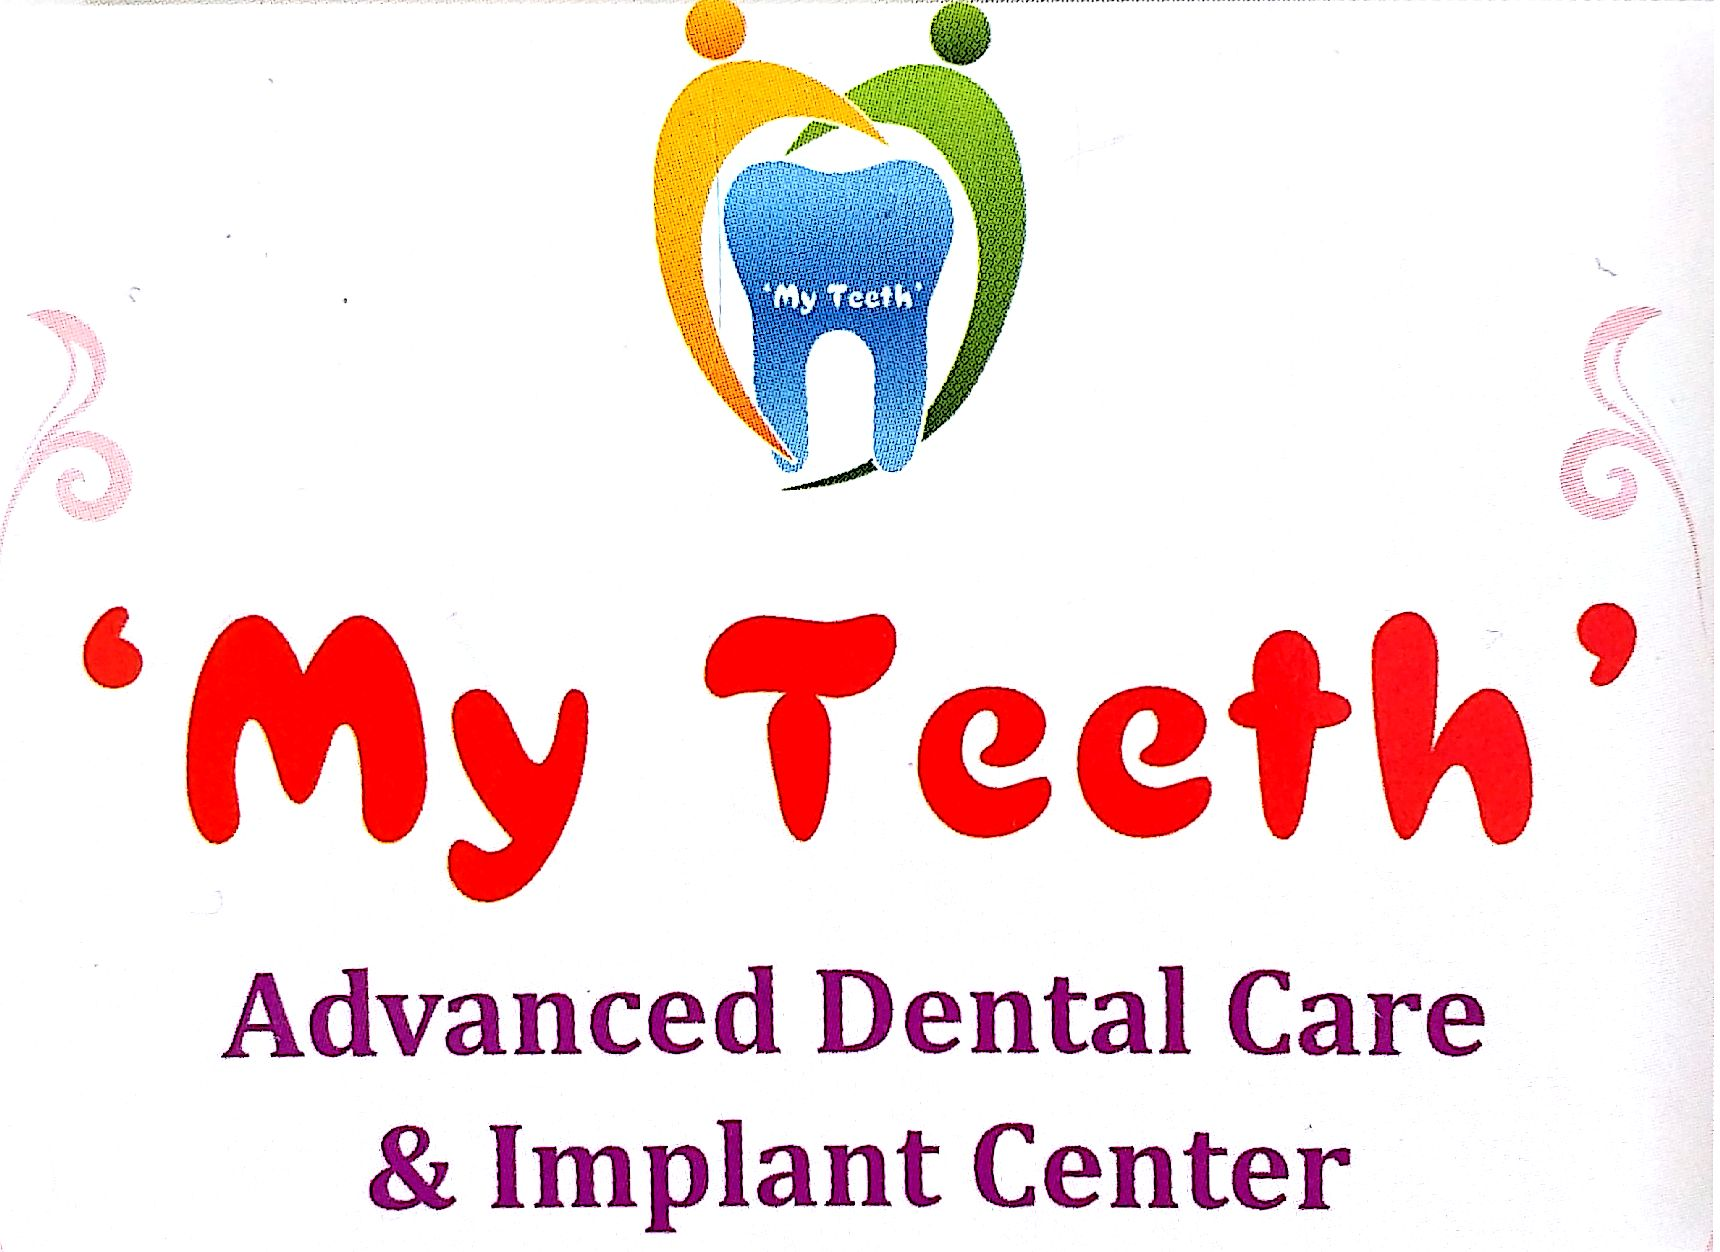 My Teeth Dental Clinic